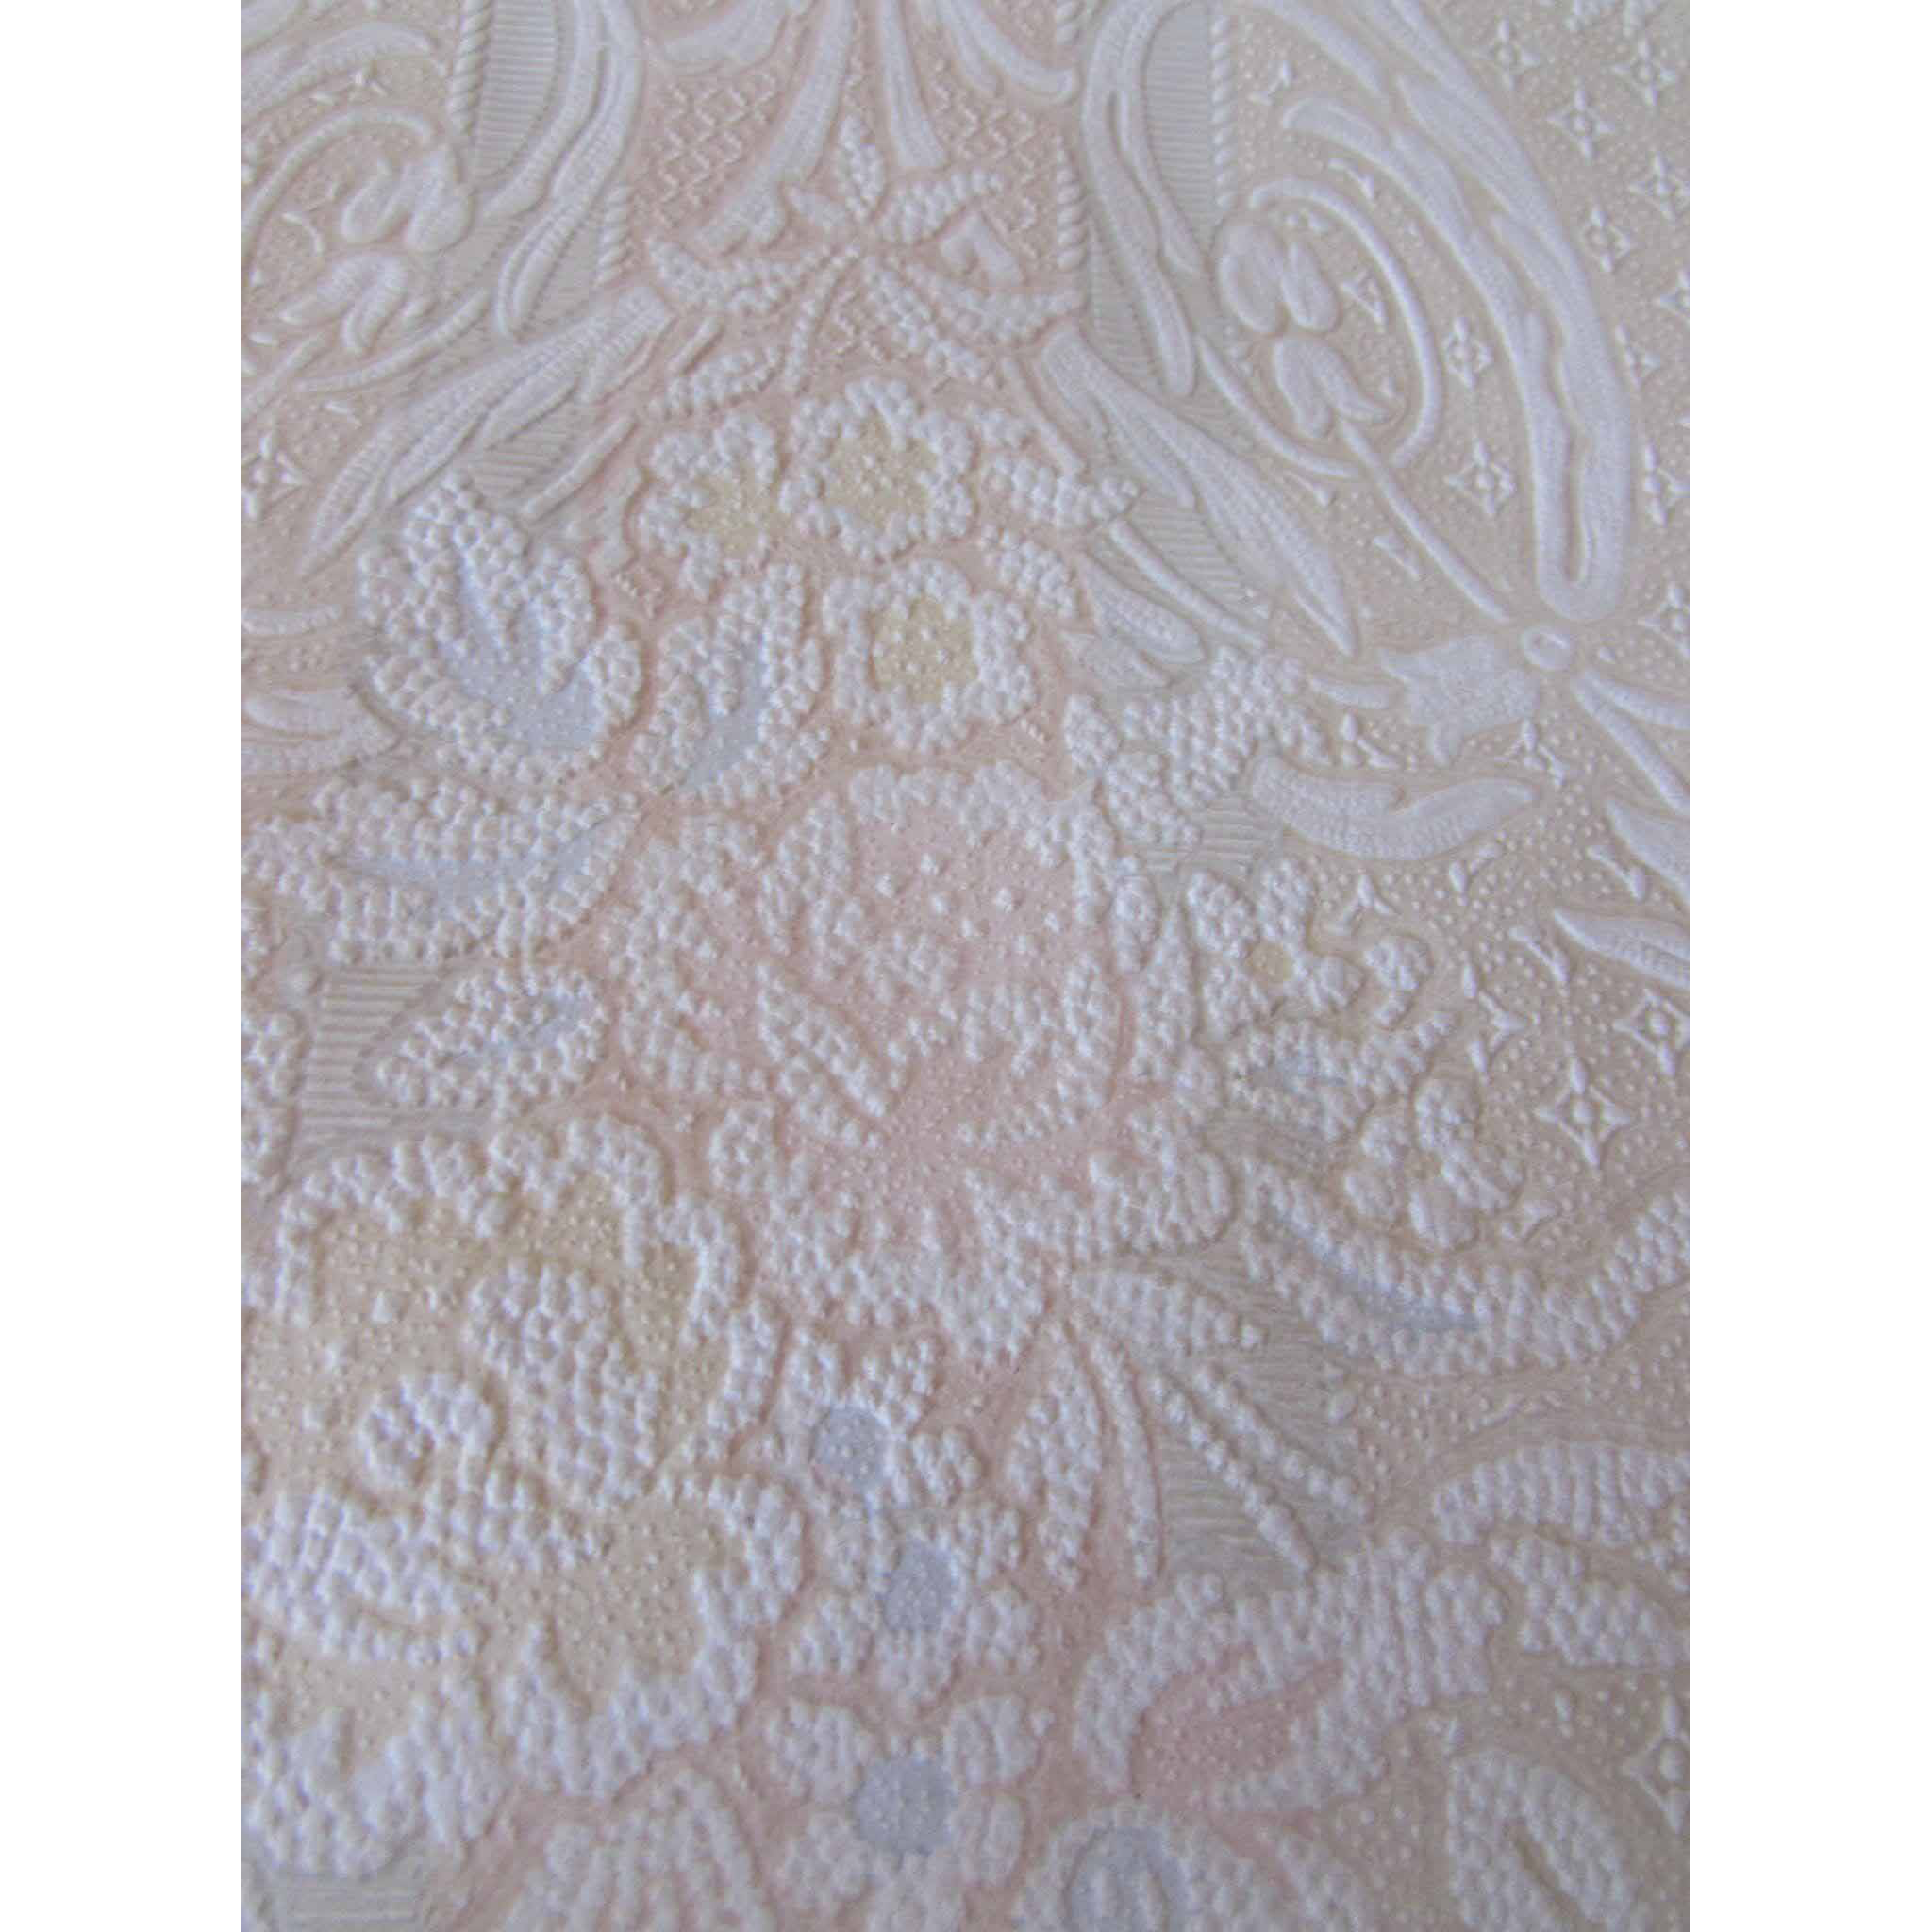 1950 Era Flocked Wallpaper in Muted Pastels and Baroque Design Wedding Shabby Chic Cottage Style